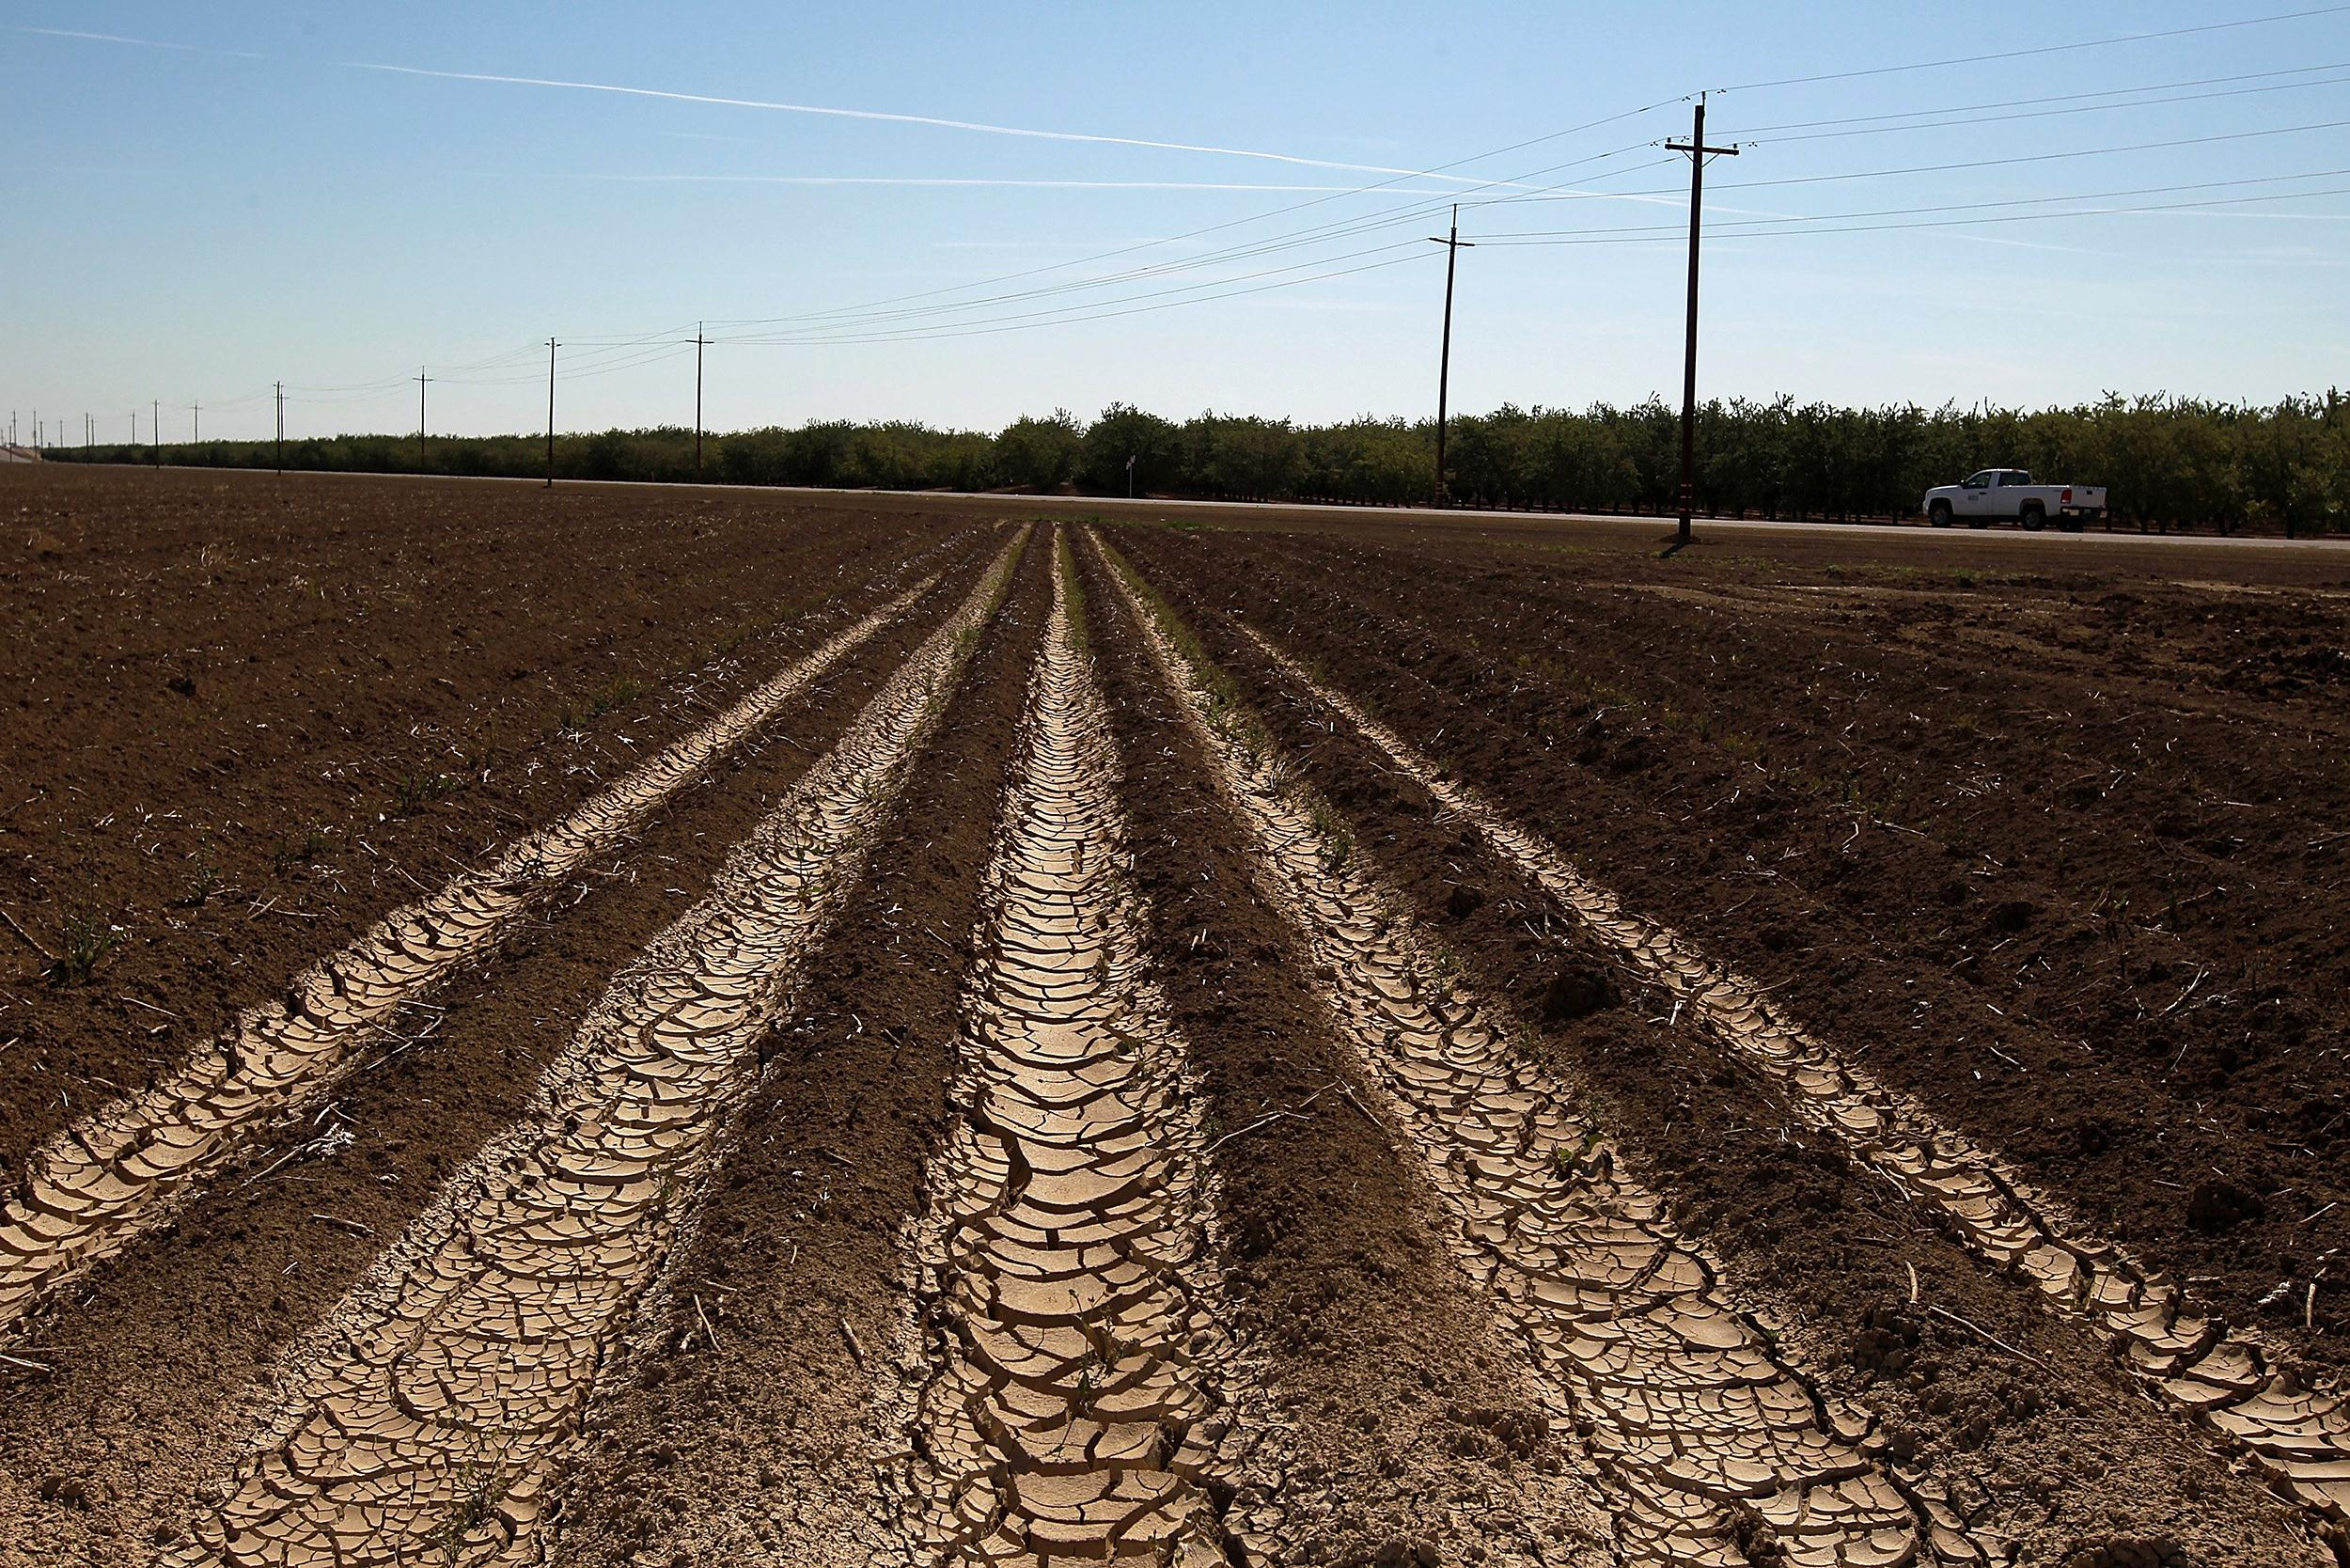 Image: Dried and cracked earth is visible on an unplanted field at a farm near Mendota, Calif.